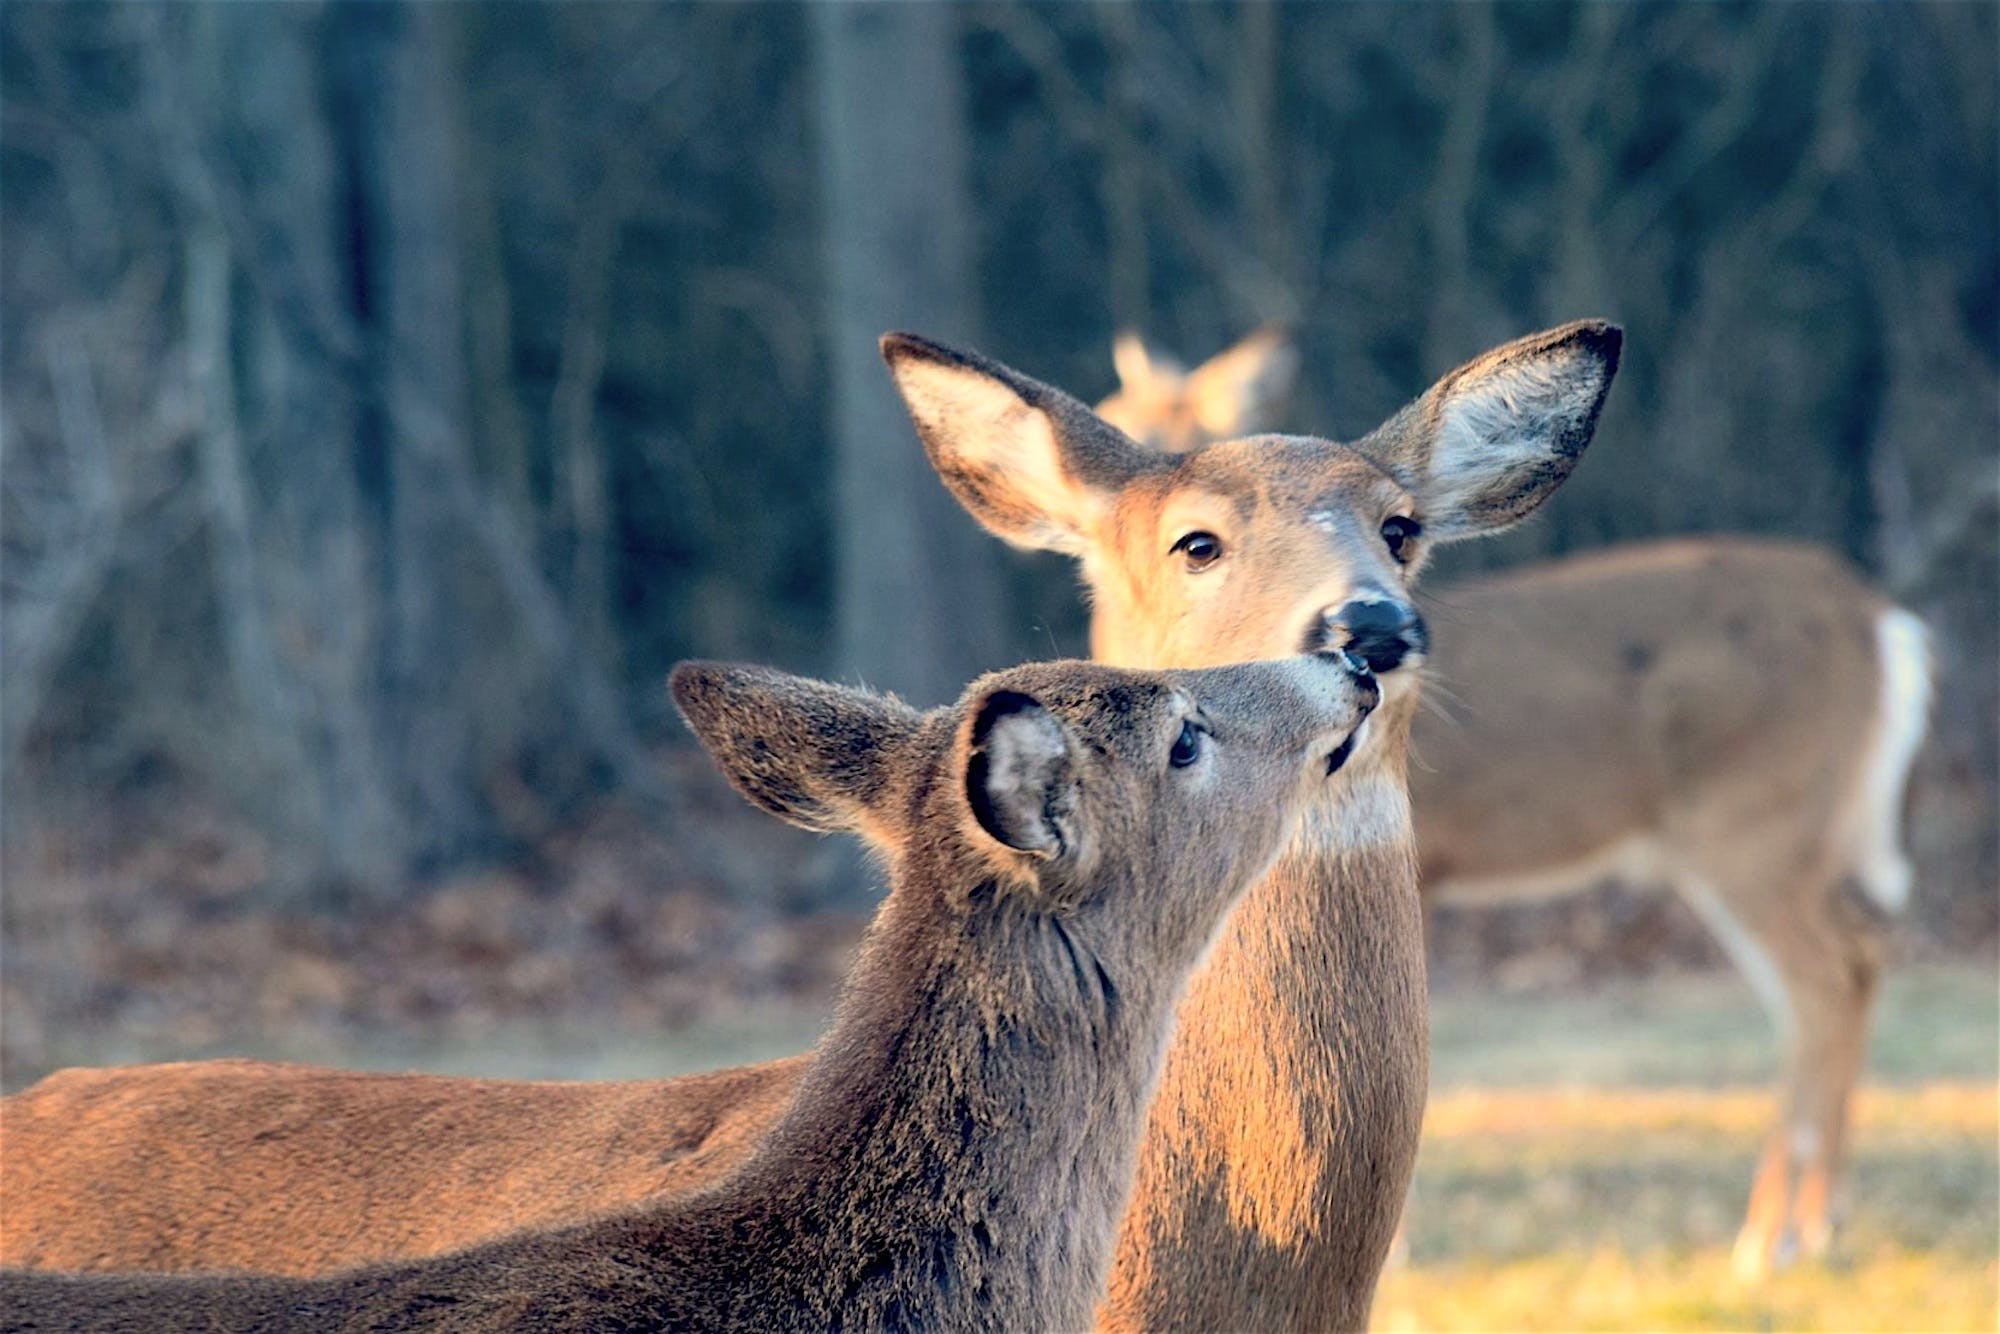 Deer Kissing Each Other